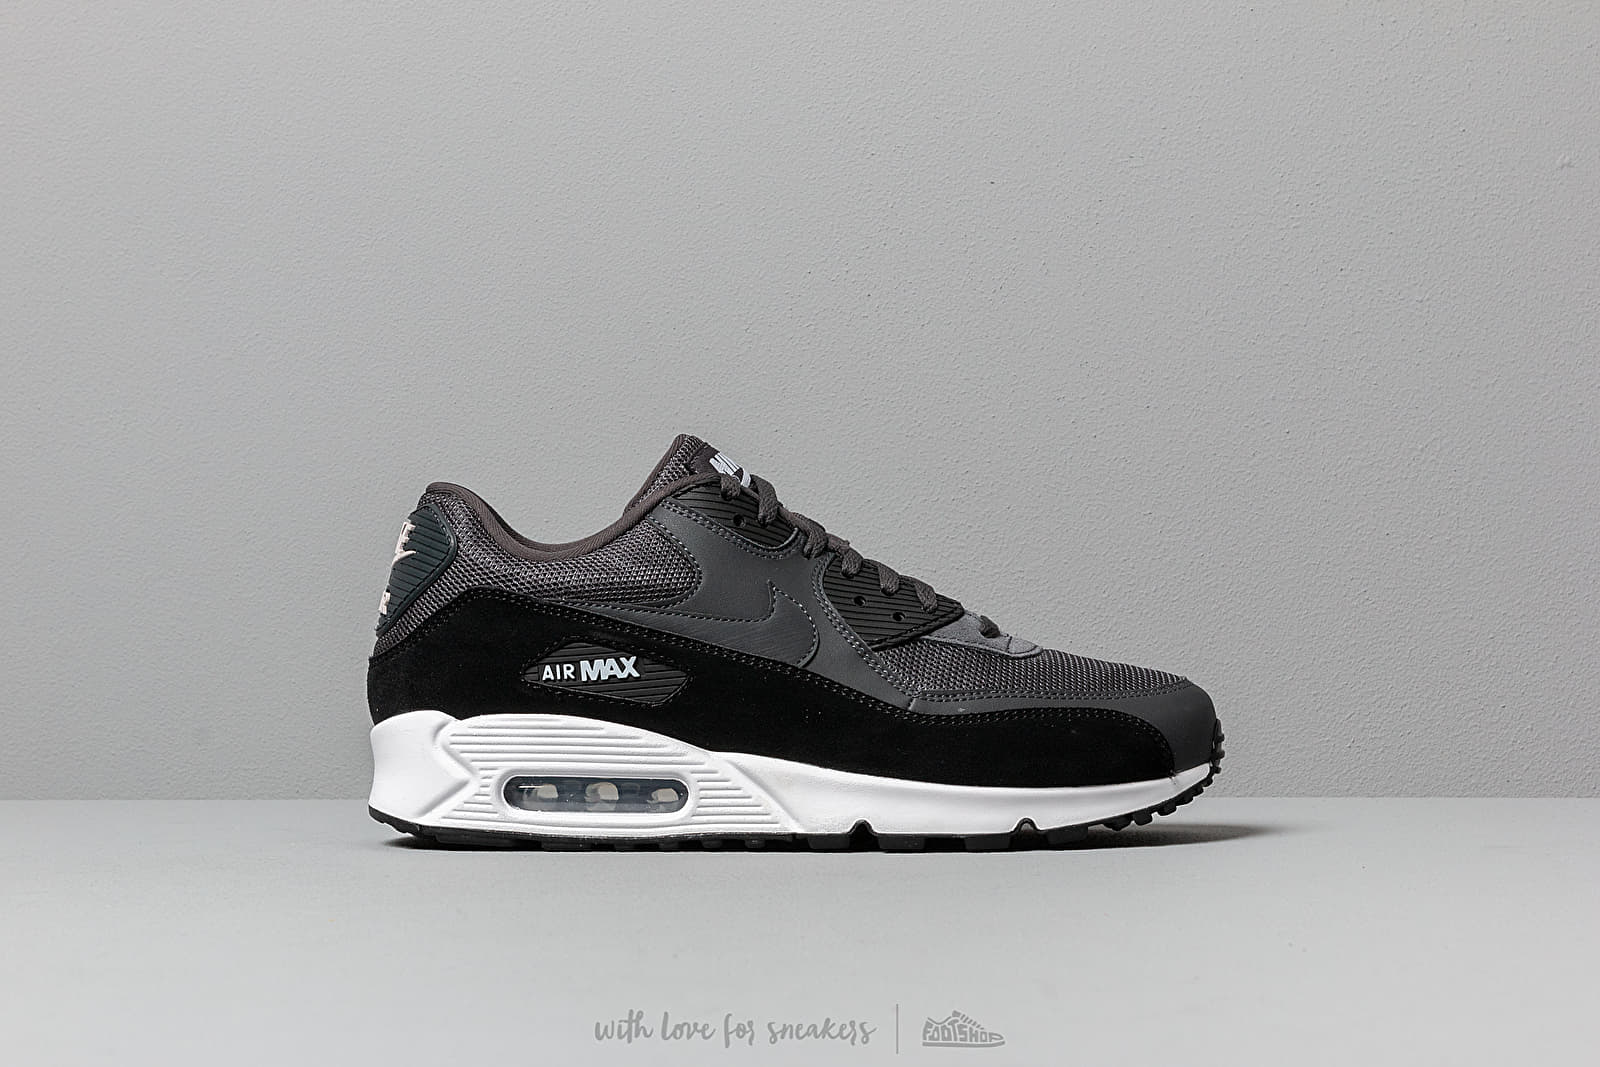 promo code 486e4 82697 Nike Air Max 90 Essential Anthracite/ White-Black at a great price 132 €